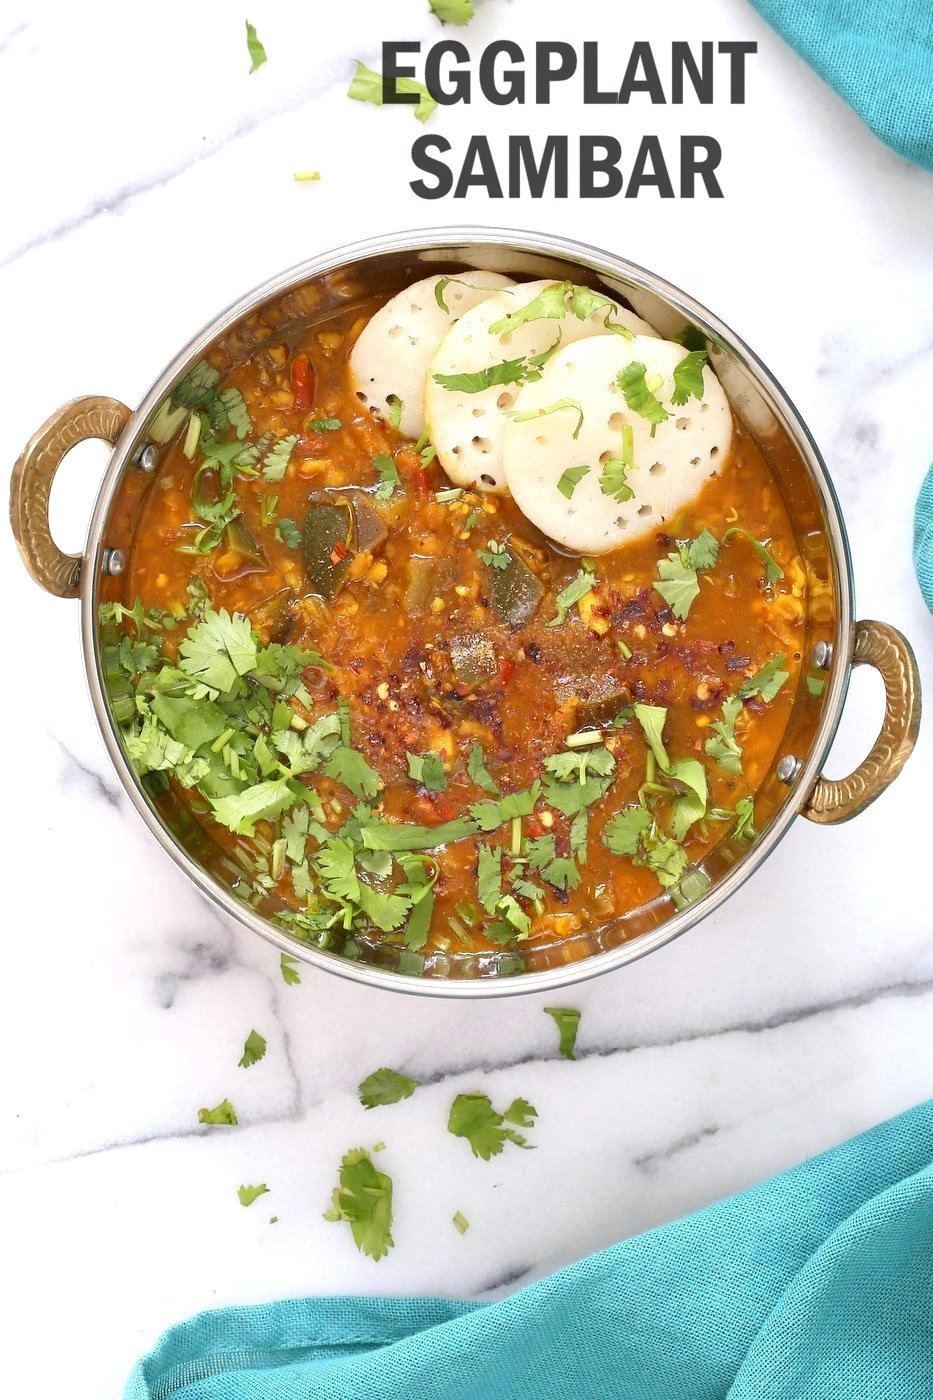 Instant pot eggplant sambar recipe indian yellow lentil tamarind eggplant sambar recipe indian yellow lentil tamarind dal toor dal sambar with eggplant or forumfinder Choice Image